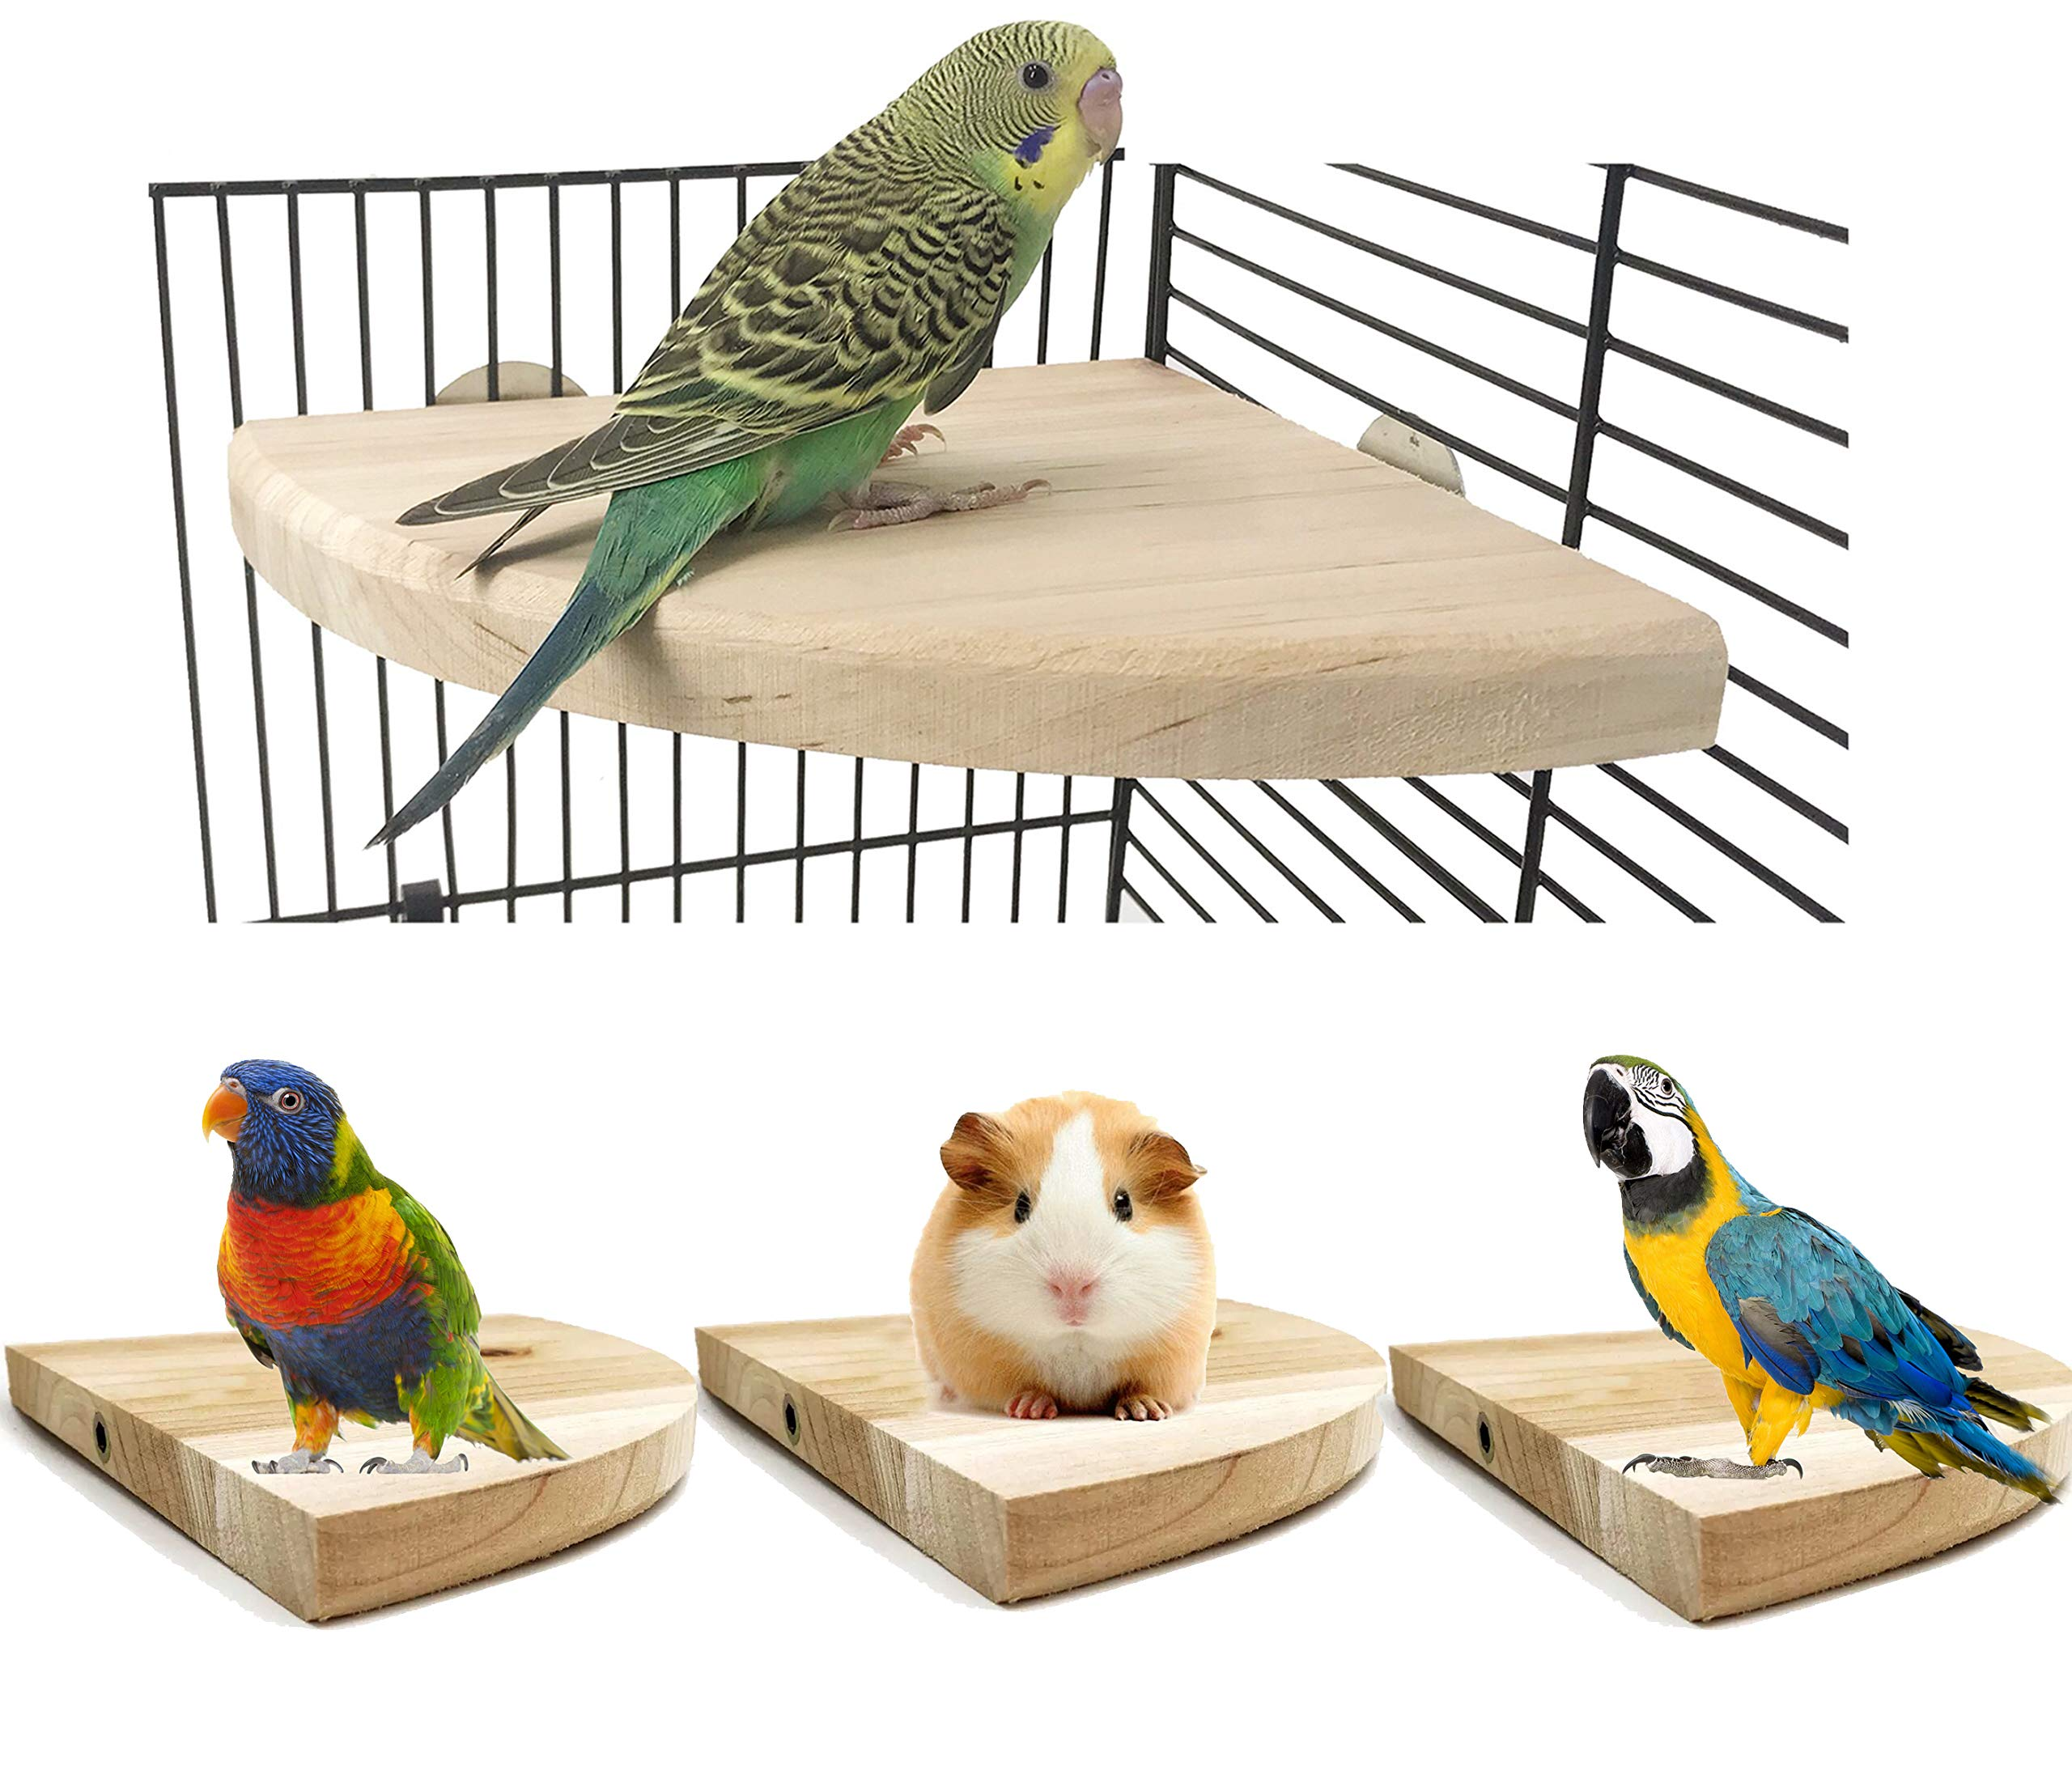 Woopets Wood Perch Bird Platform, Cage Accessories for Small Anminals Rat Hamster Gerbil Rat Mouse Lovebird Finches Conure Budgie Exercise Toy (7 inches) by Woopets